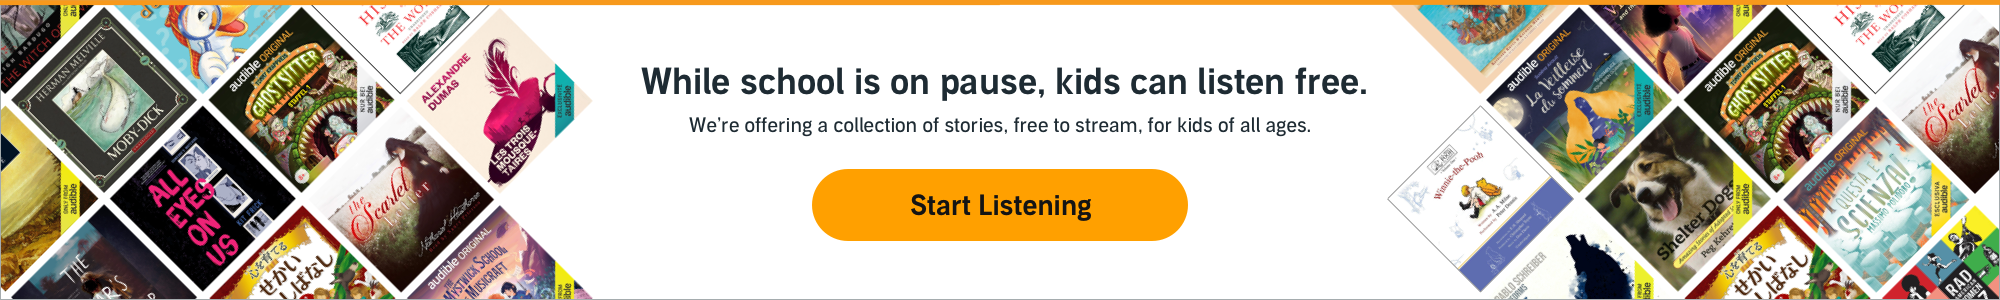 Listen to a collection of stories, free to stream, for kids of all ages